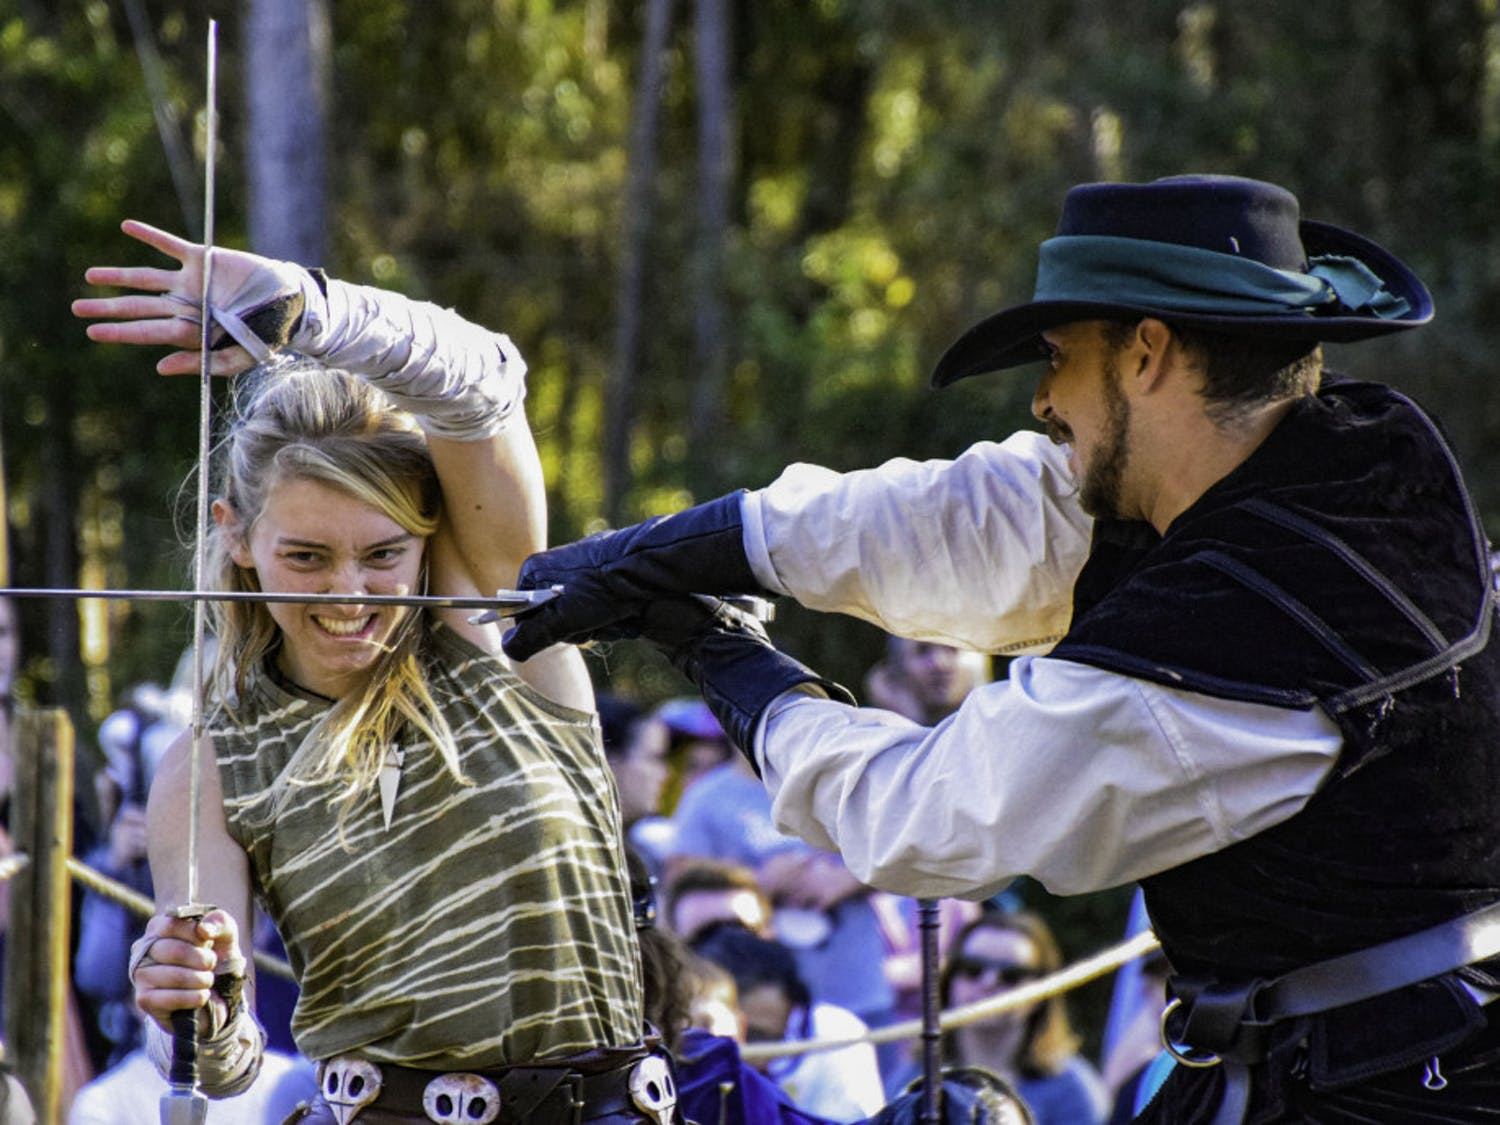 Thieves Guilde actors Sierra Barnier, 18, and Kevin Otero, 24, perform a choreographed sword fight during a chess game.